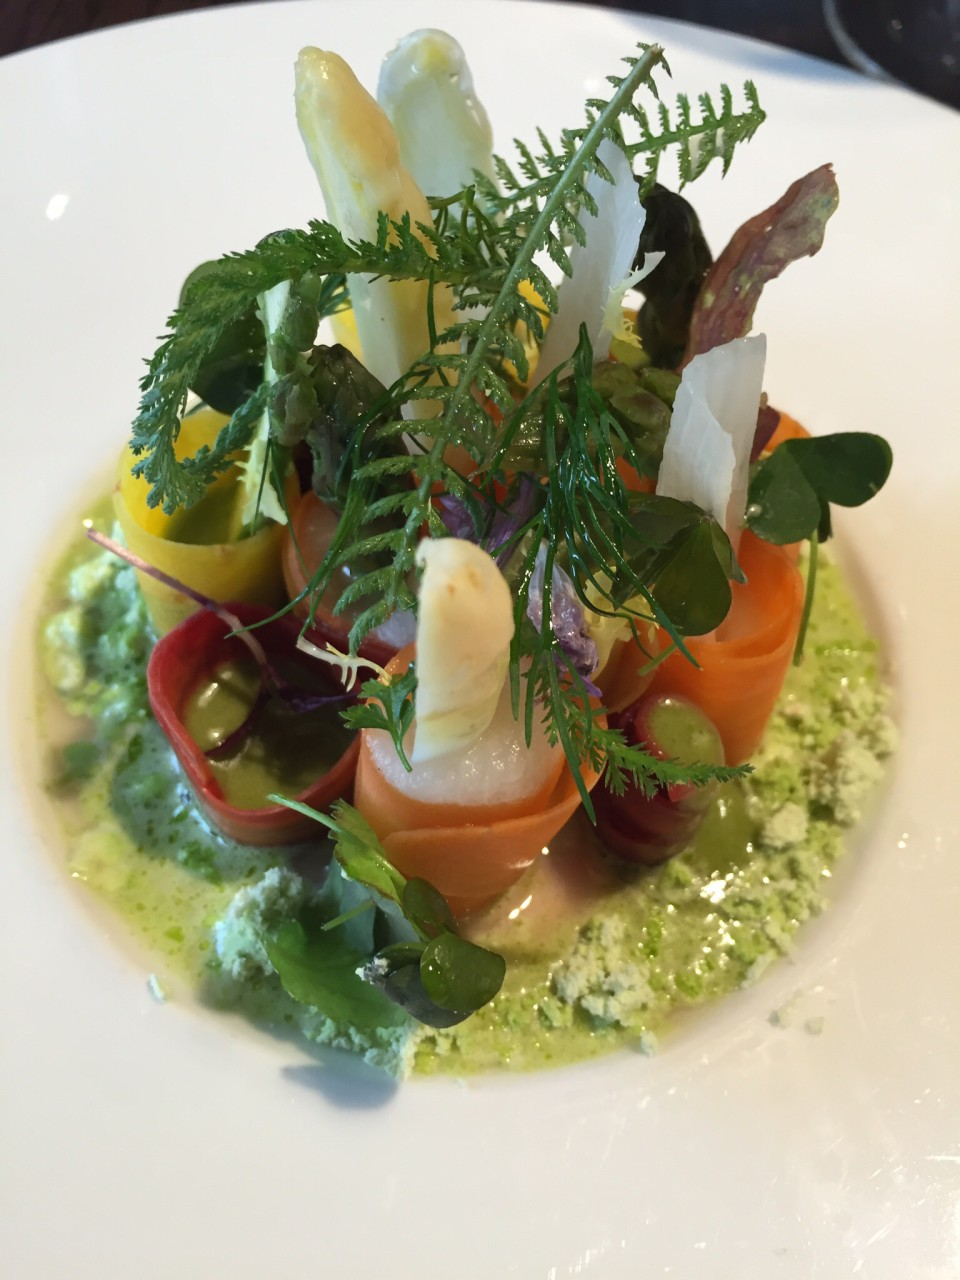 Mlynec Prague - Asparagus & Carrot Salad with Lime and Mint Dust